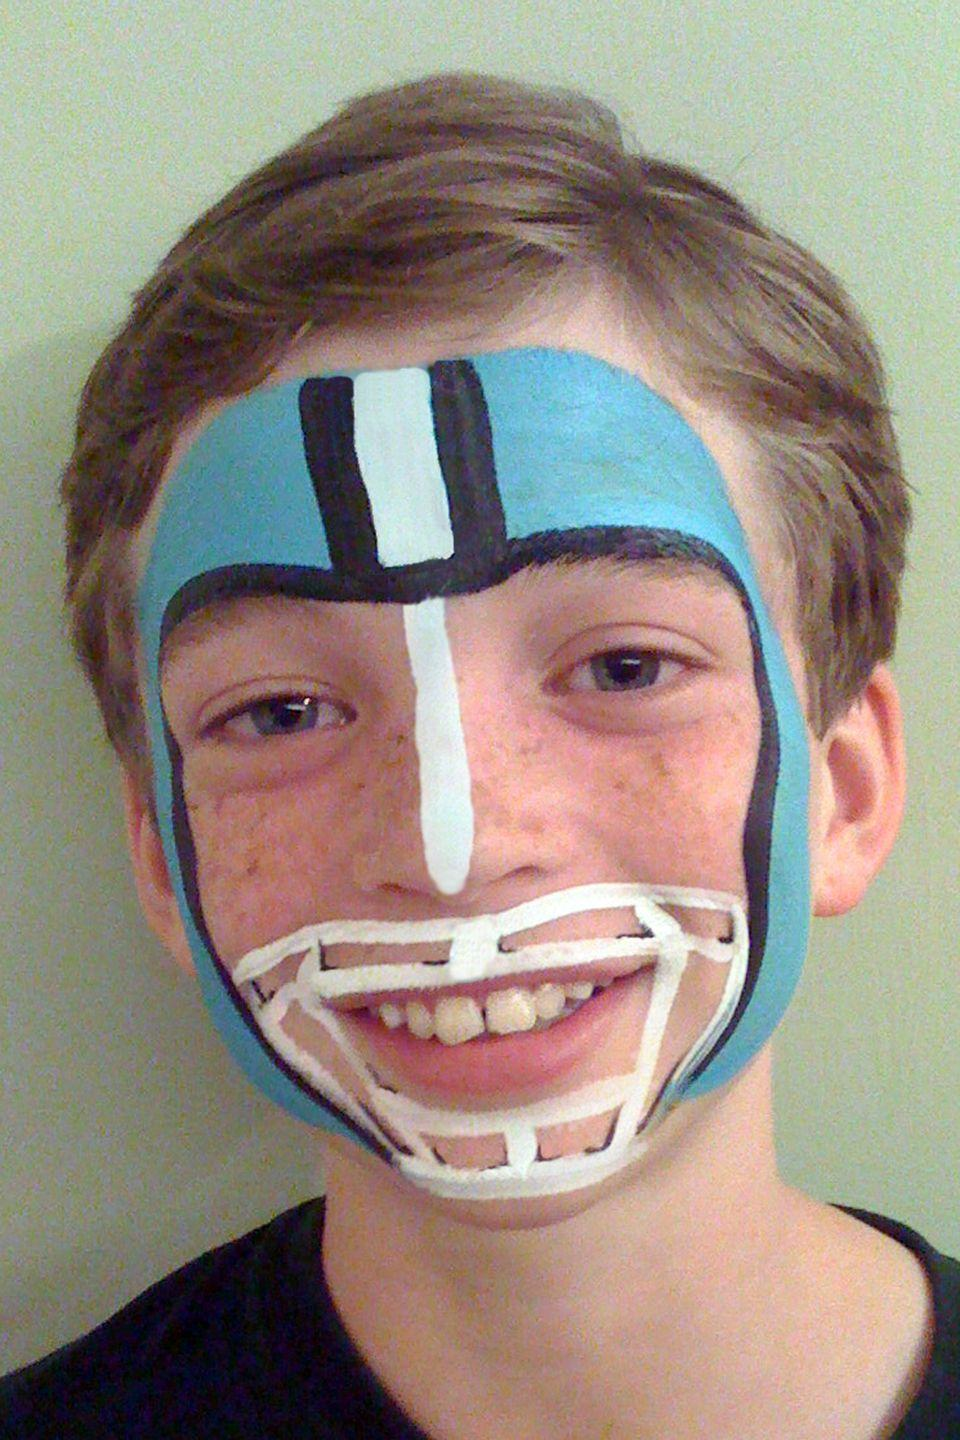 "<p>A favorite jersey paired with this helmet-themed face paint (in team colors, of course!) will definitely score you a big W with your little athlete.<br><br><em><a href=""https://facepaintingbytrudy.com/"" rel=""nofollow noopener"" target=""_blank"" data-ylk=""slk:See more at Face Painting by Trudy »"" class=""link rapid-noclick-resp"">See more at Face Painting by Trudy »</a></em><br></p>"